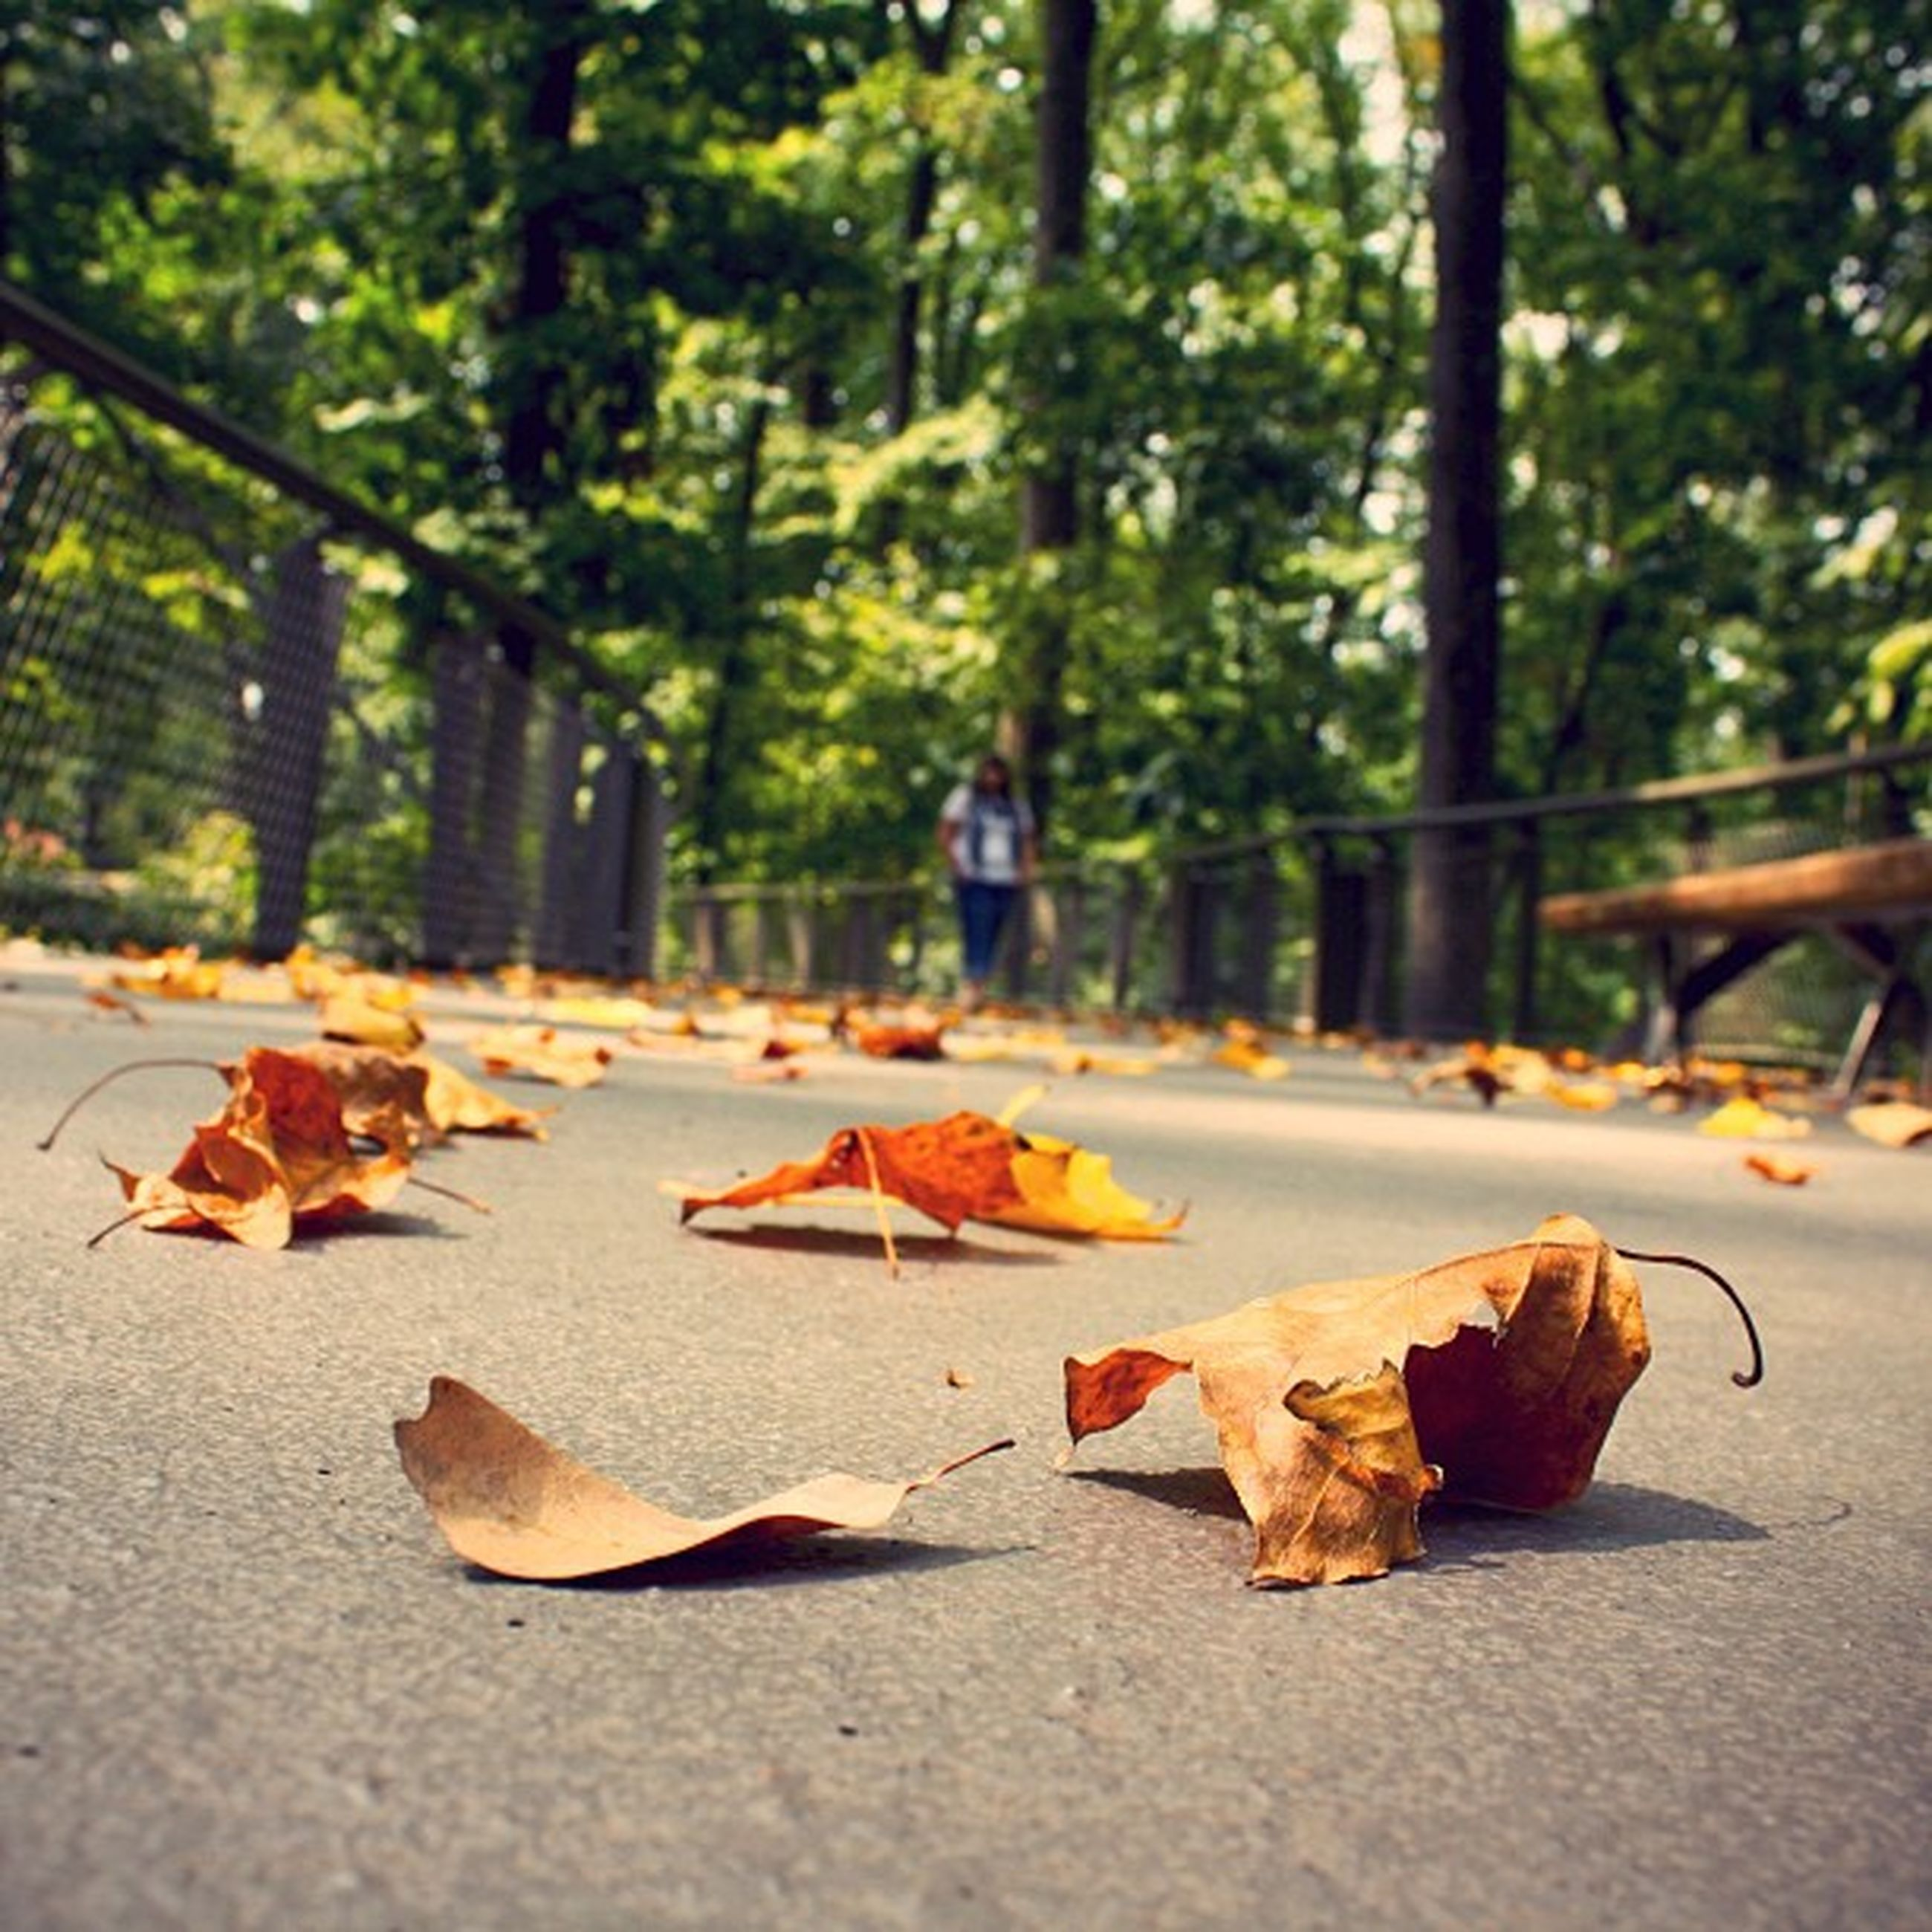 leaf, tree, autumn, change, fallen, leaves, tree trunk, park - man made space, street, season, dry, nature, day, outdoors, road, footpath, falling, sunlight, focus on foreground, incidental people